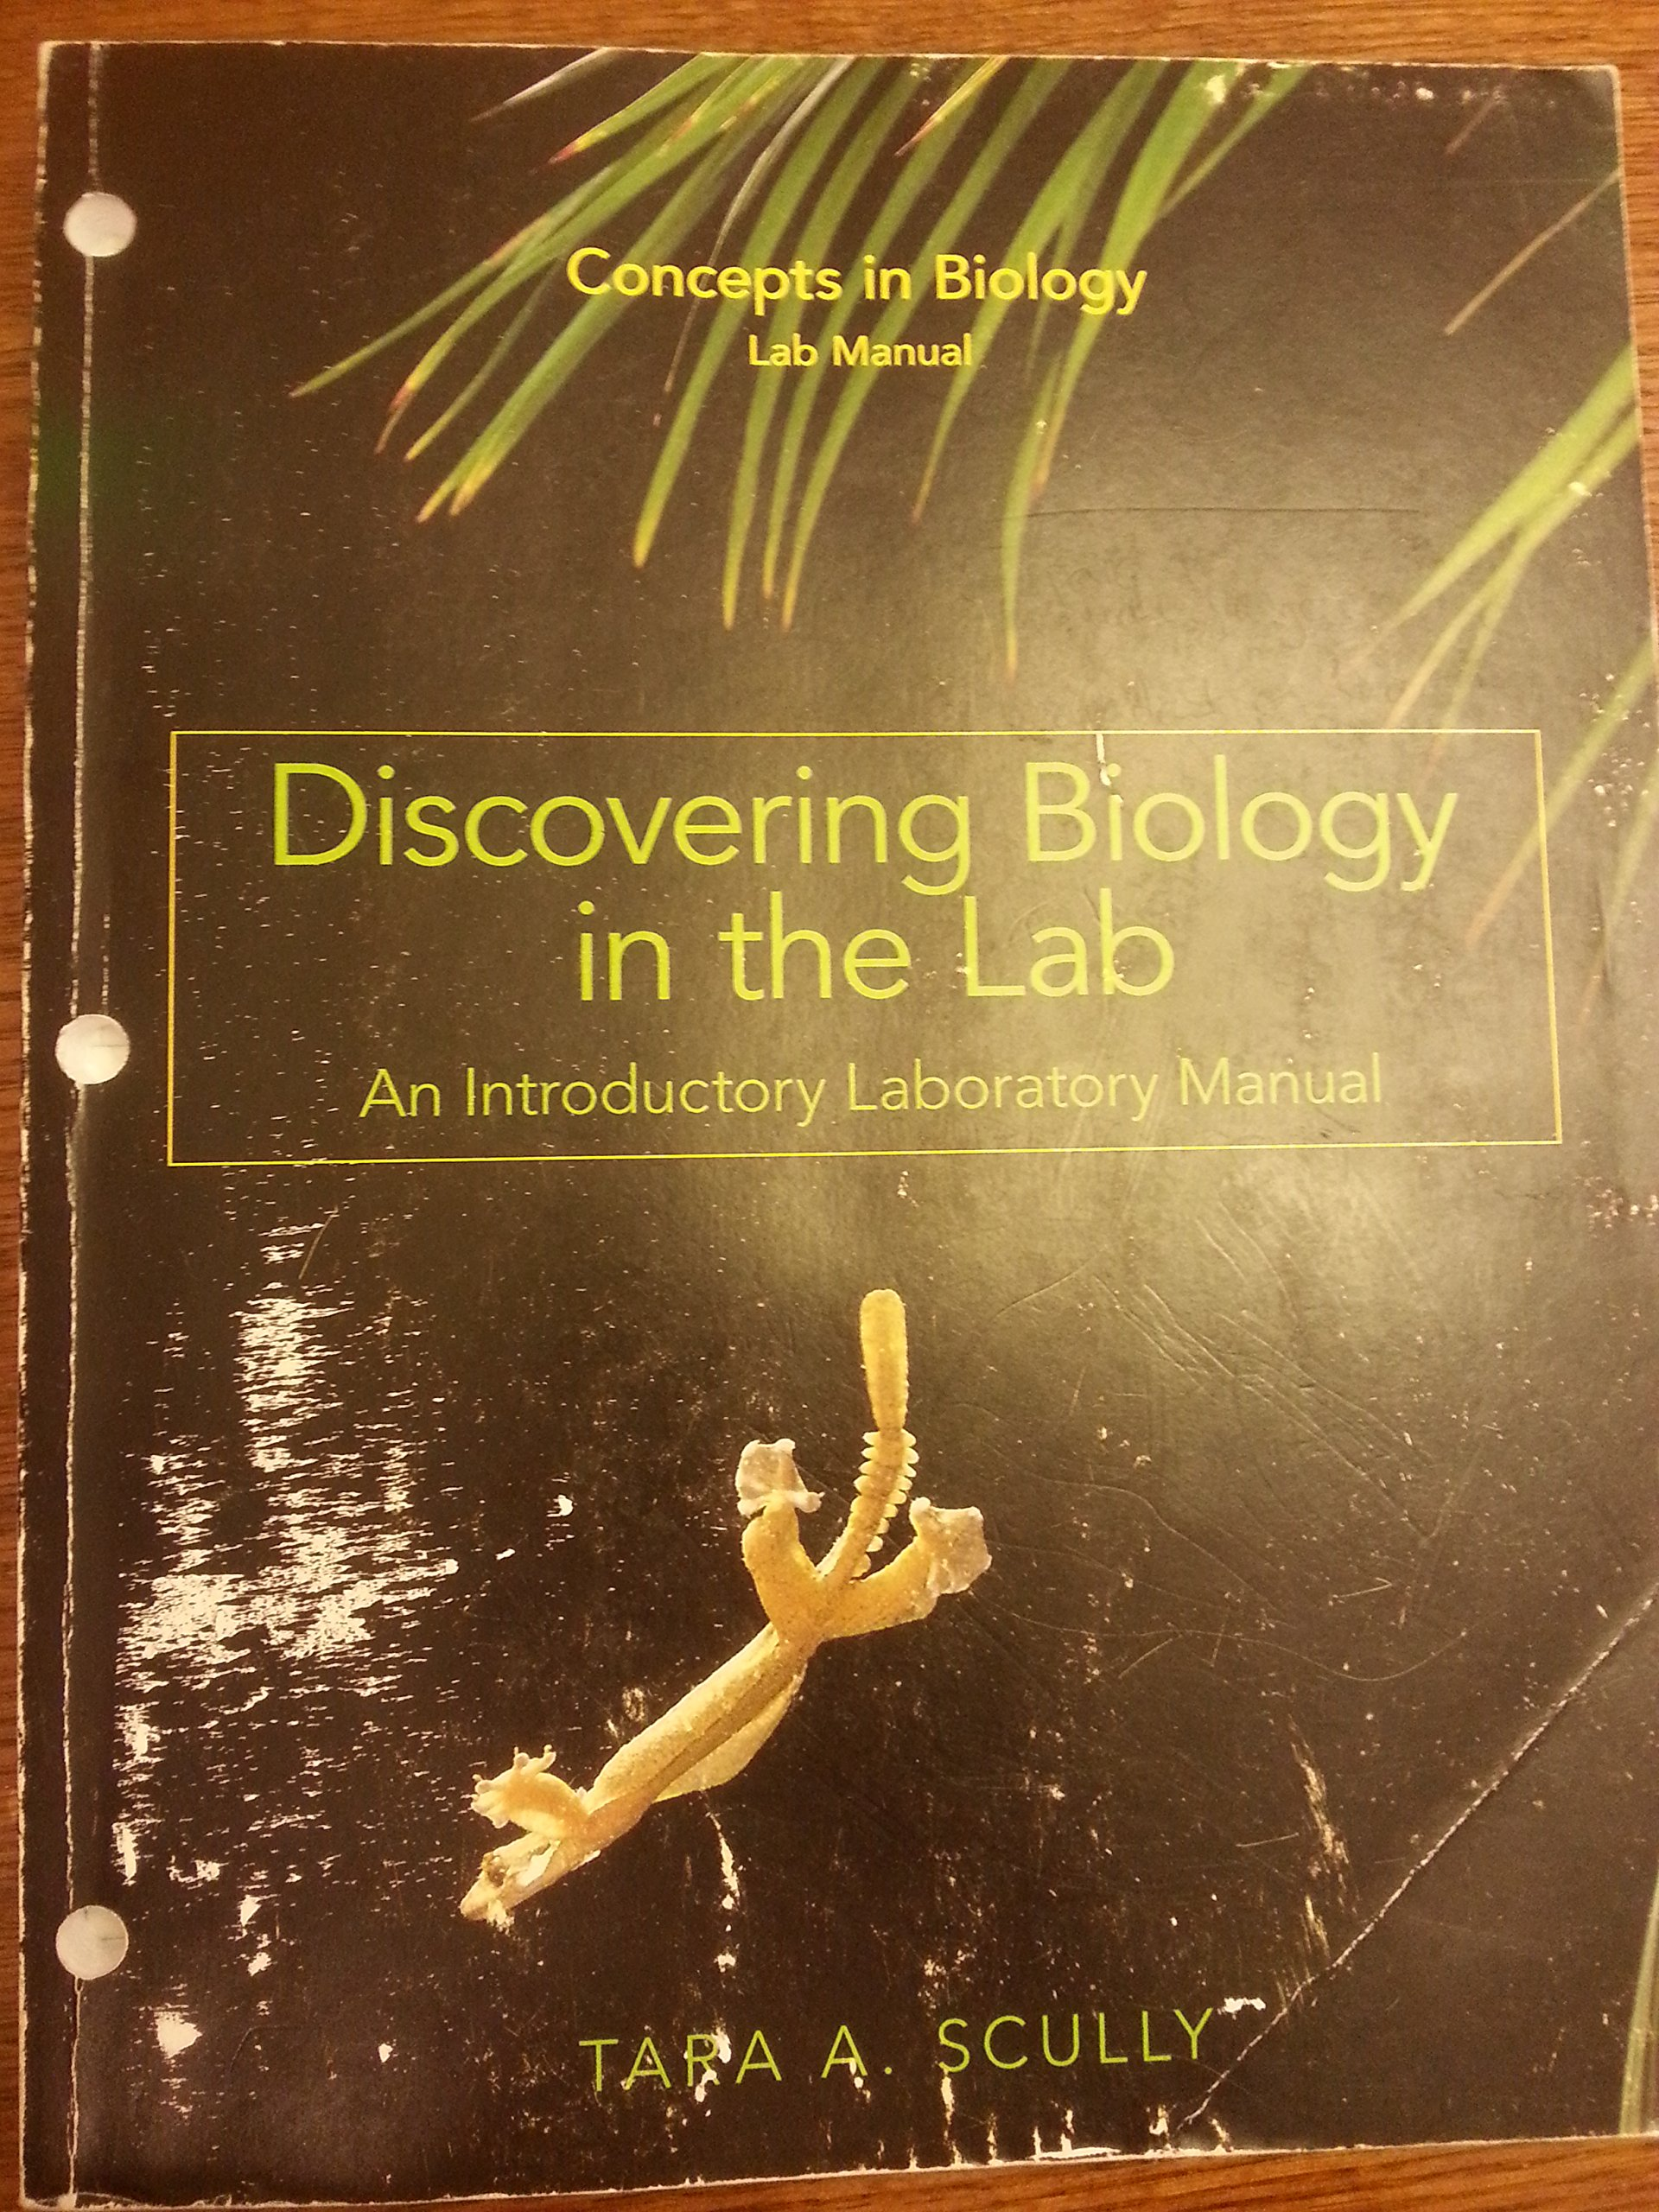 Read Online Discovering Biology in the Lab: An Introductory Laboratory Manual (Concepts in Biology Lab Manual) pdf